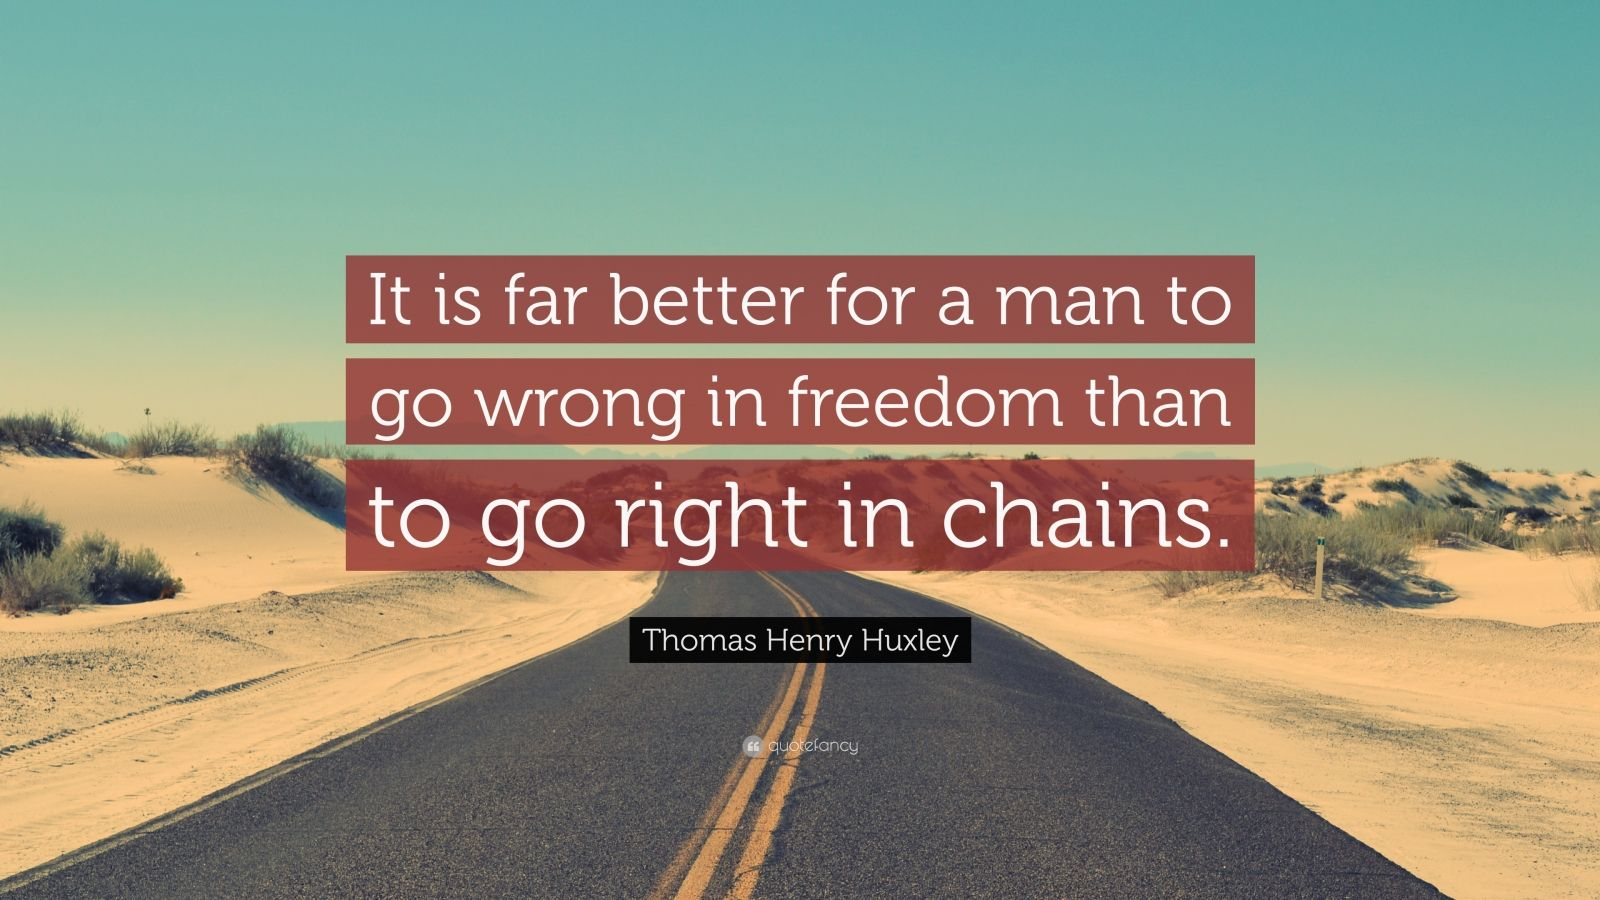 """Thomas Henry Huxley Quote: """"It is far better for a man to go wrong in freedom than to go right in chains."""""""